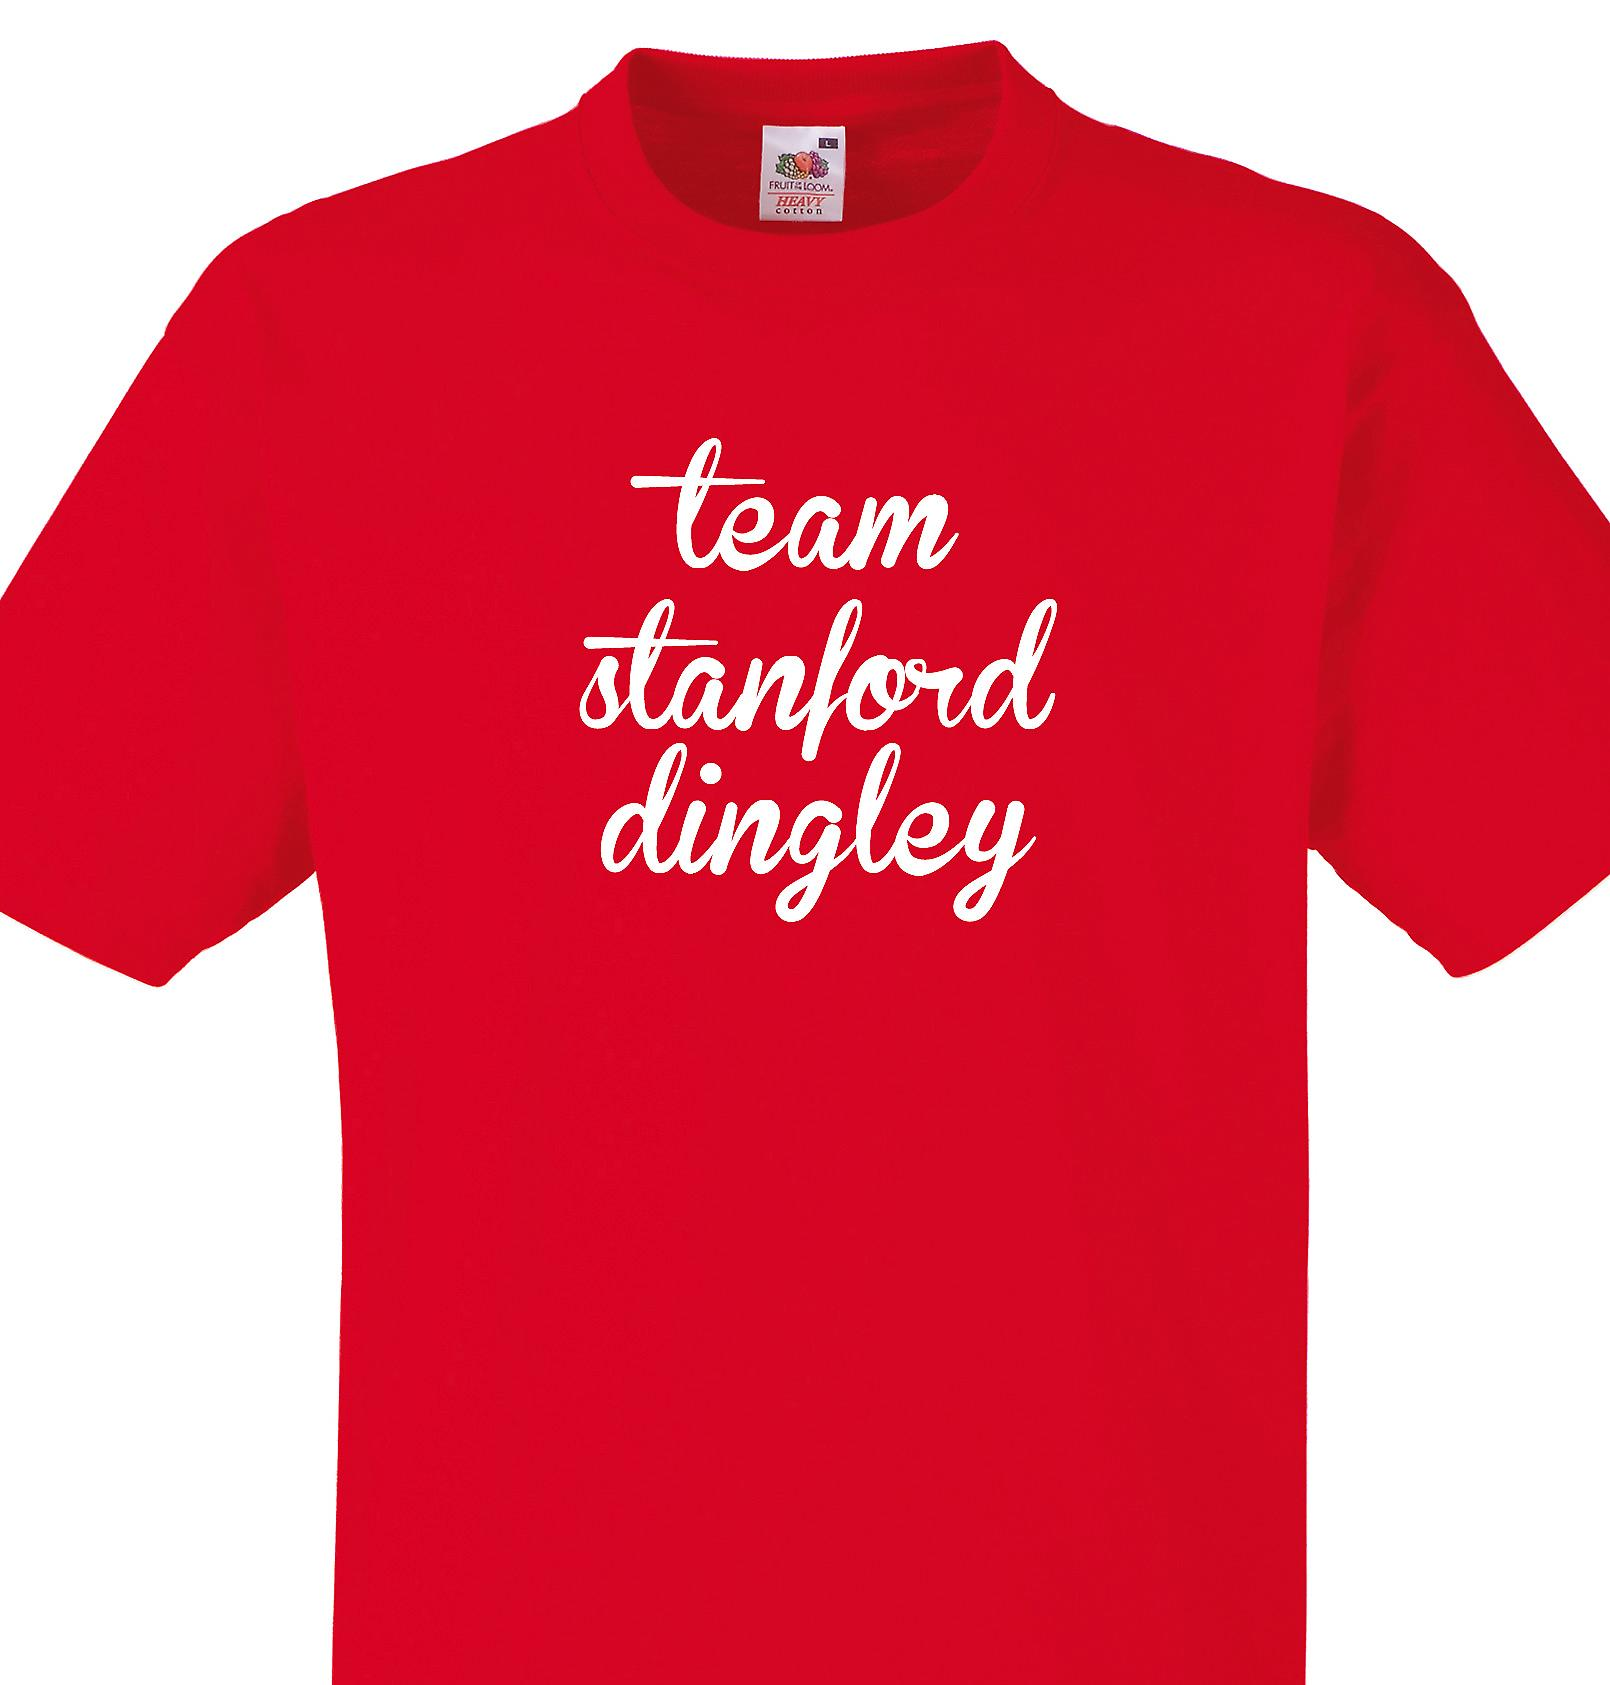 Team Stanford dingley Red T shirt